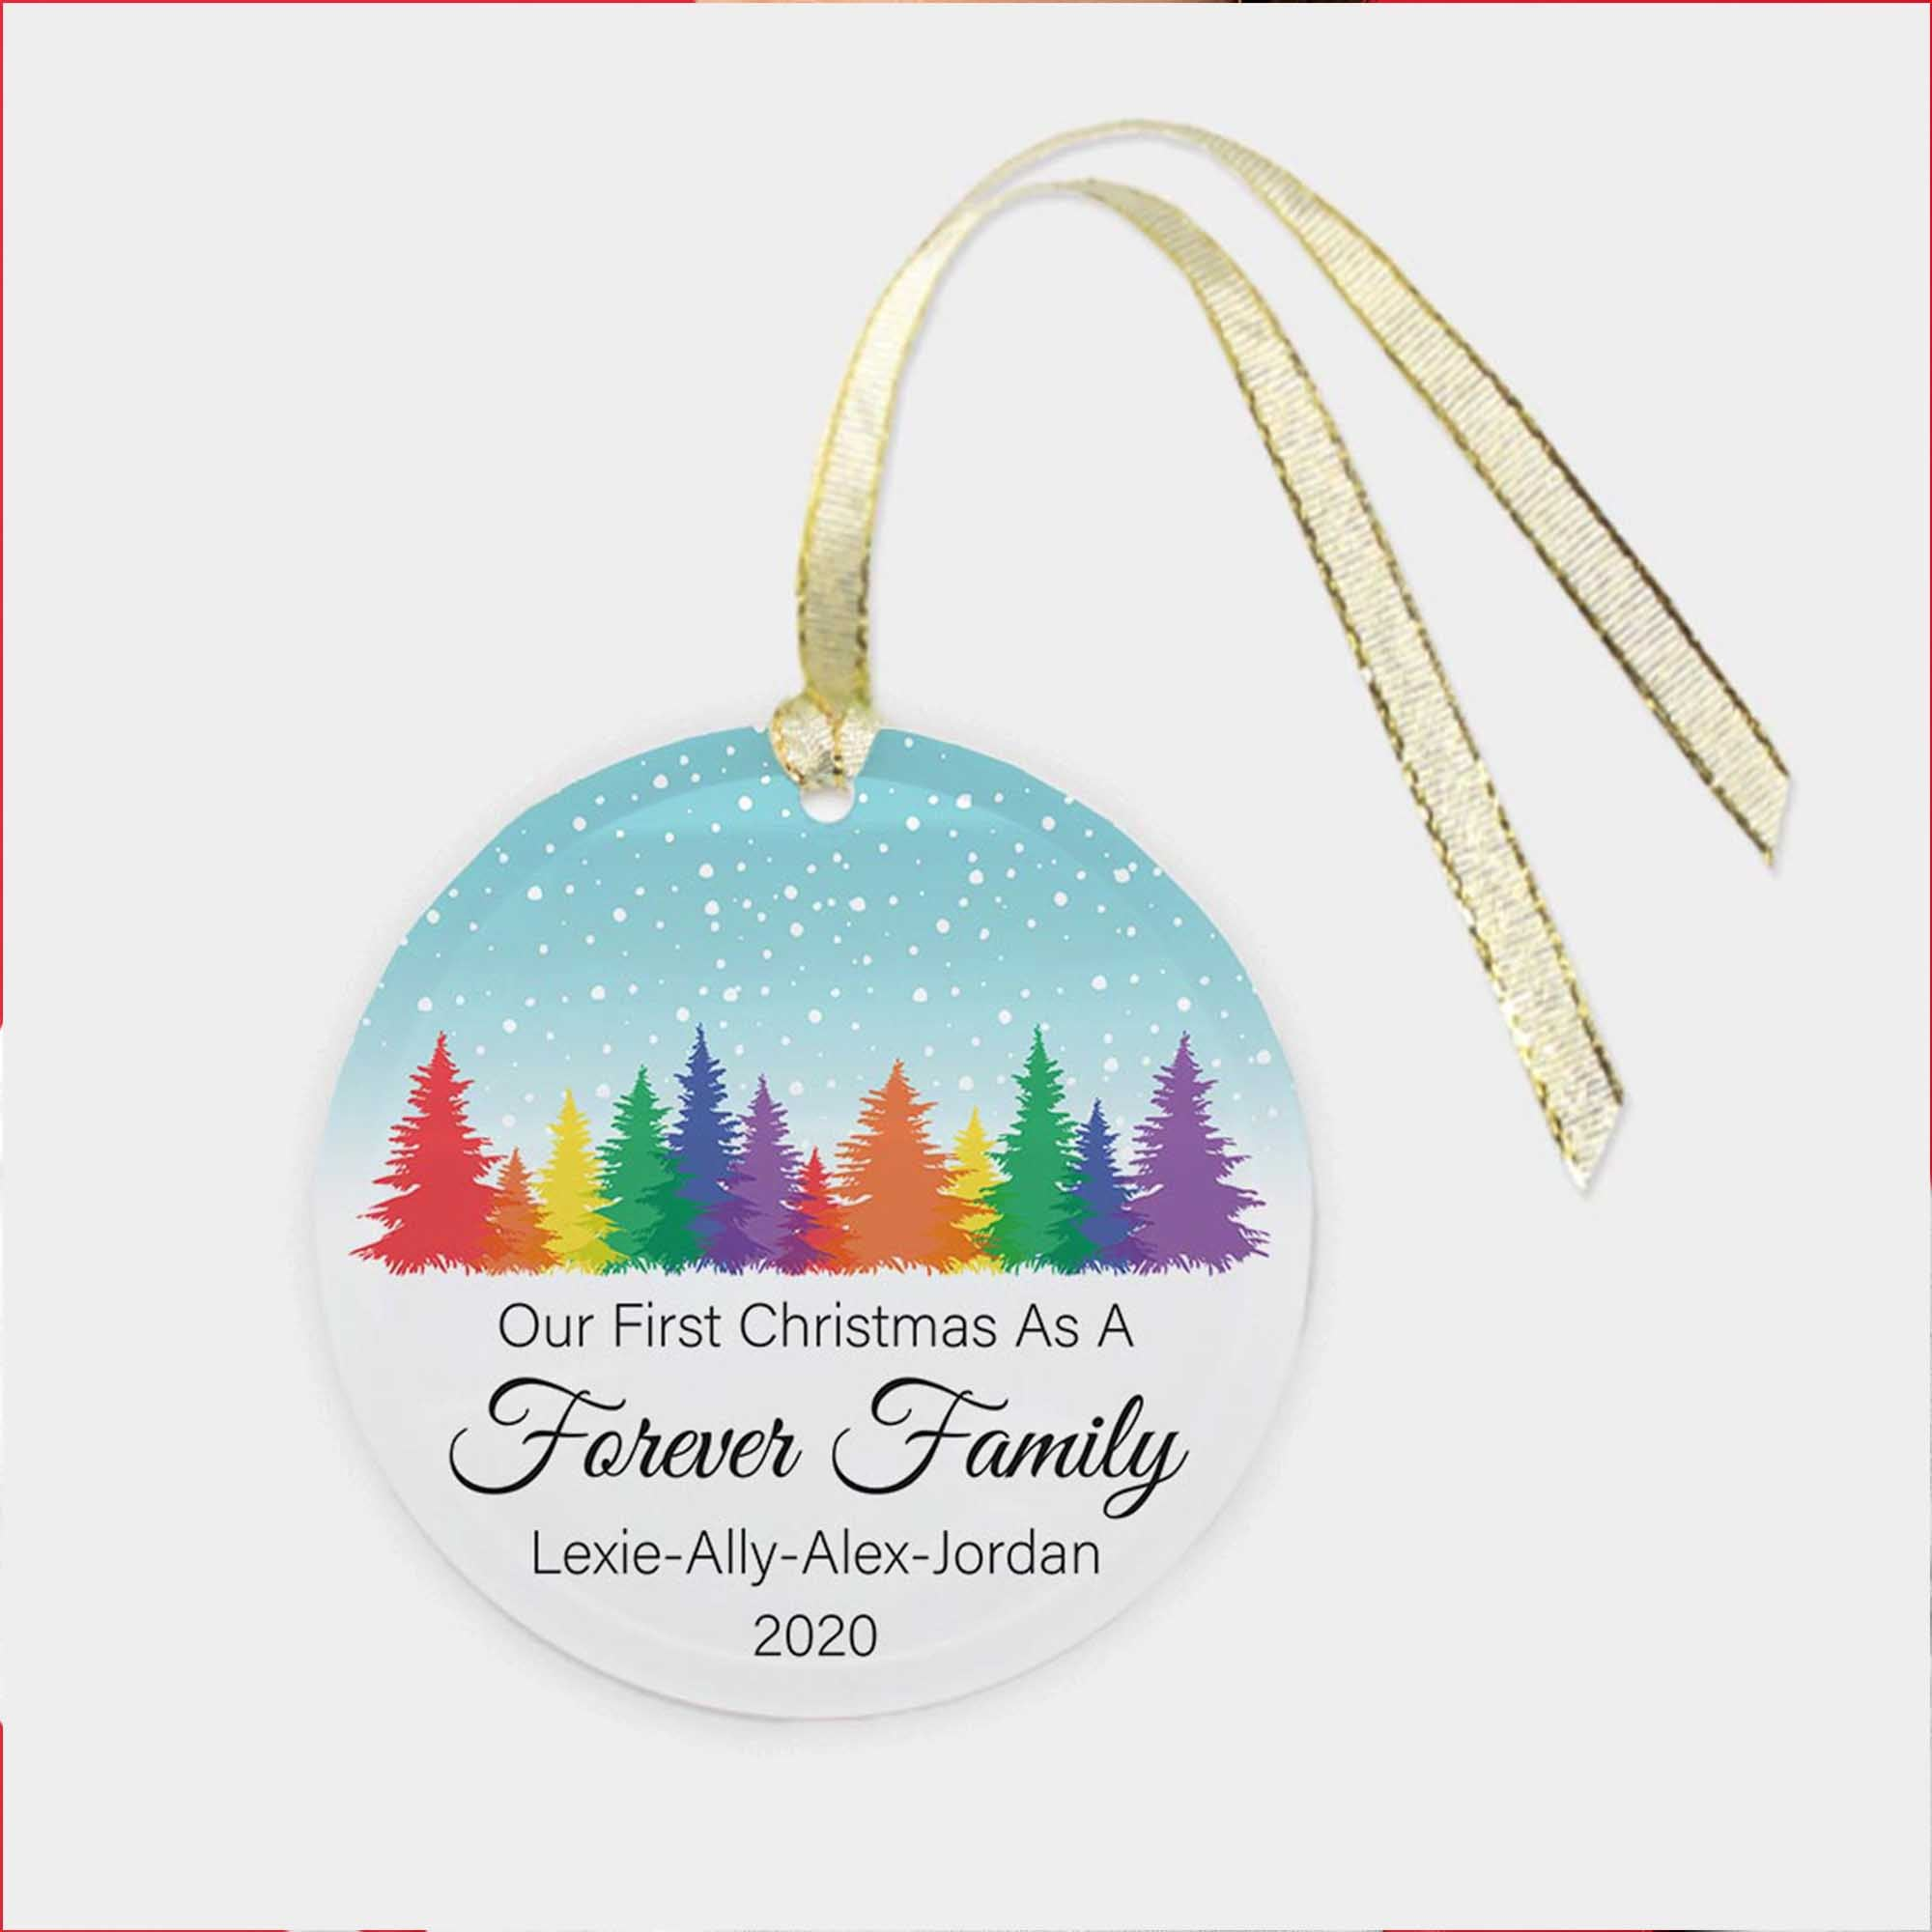 Our First Christmas As A Forever Family - Custom Ornament